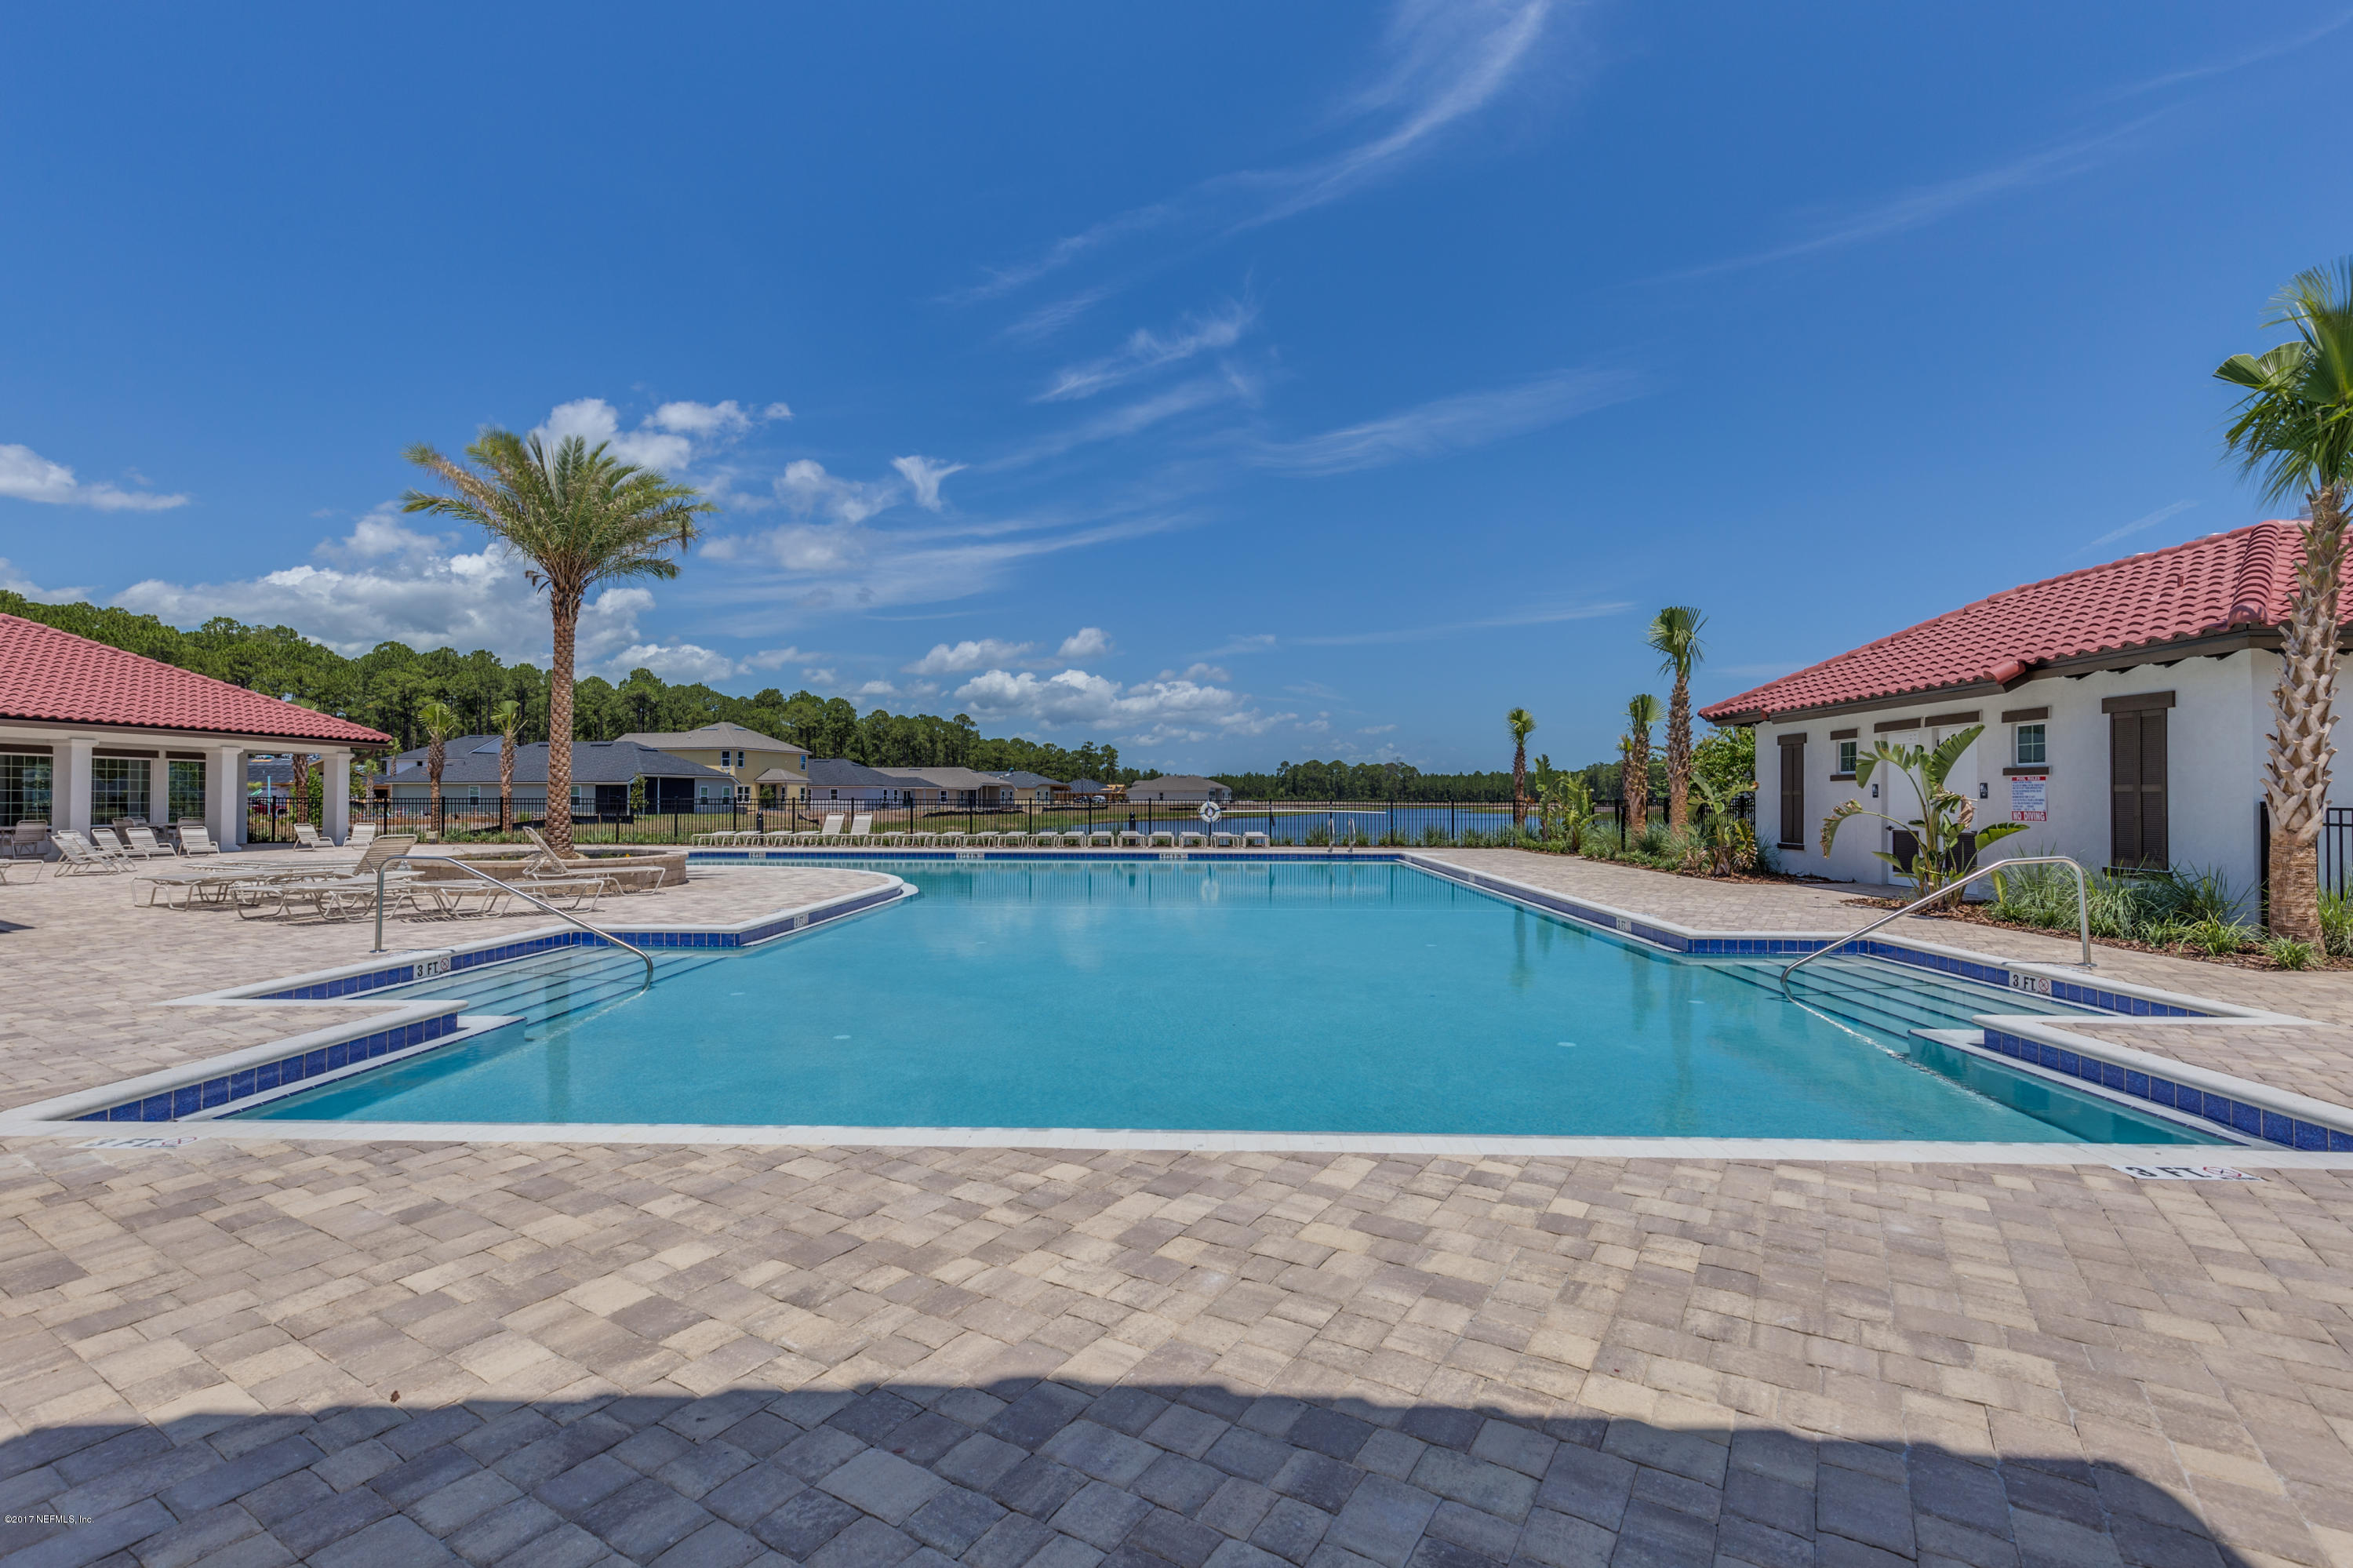 488 PALACE, ST AUGUSTINE, FLORIDA 32084, 4 Bedrooms Bedrooms, ,2 BathroomsBathrooms,Residential,For sale,PALACE,1059754